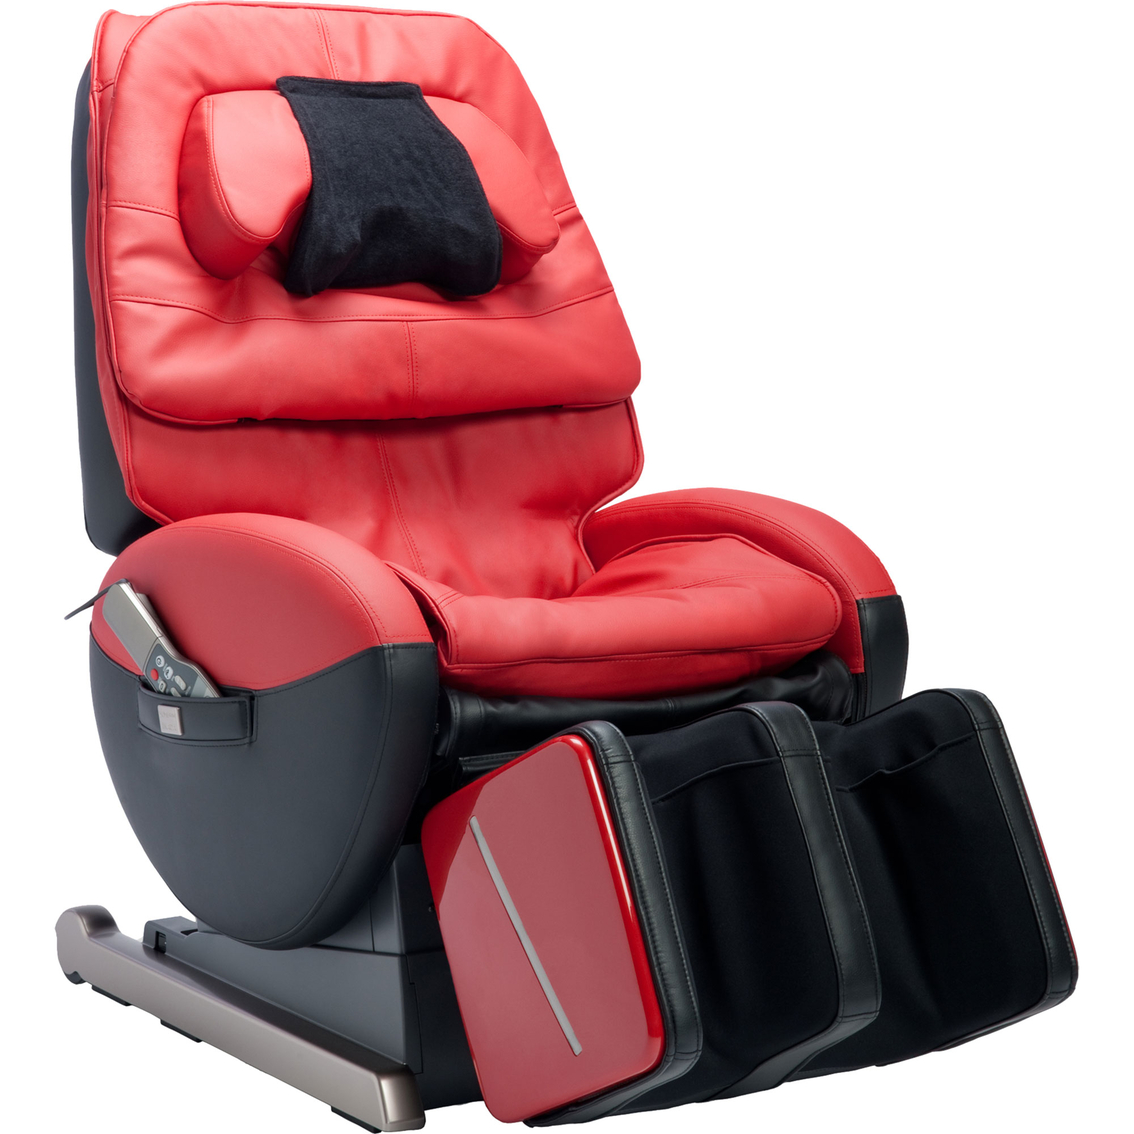 Inada Chair Inada Yu Me Rocking Massage Chair Red Chairs